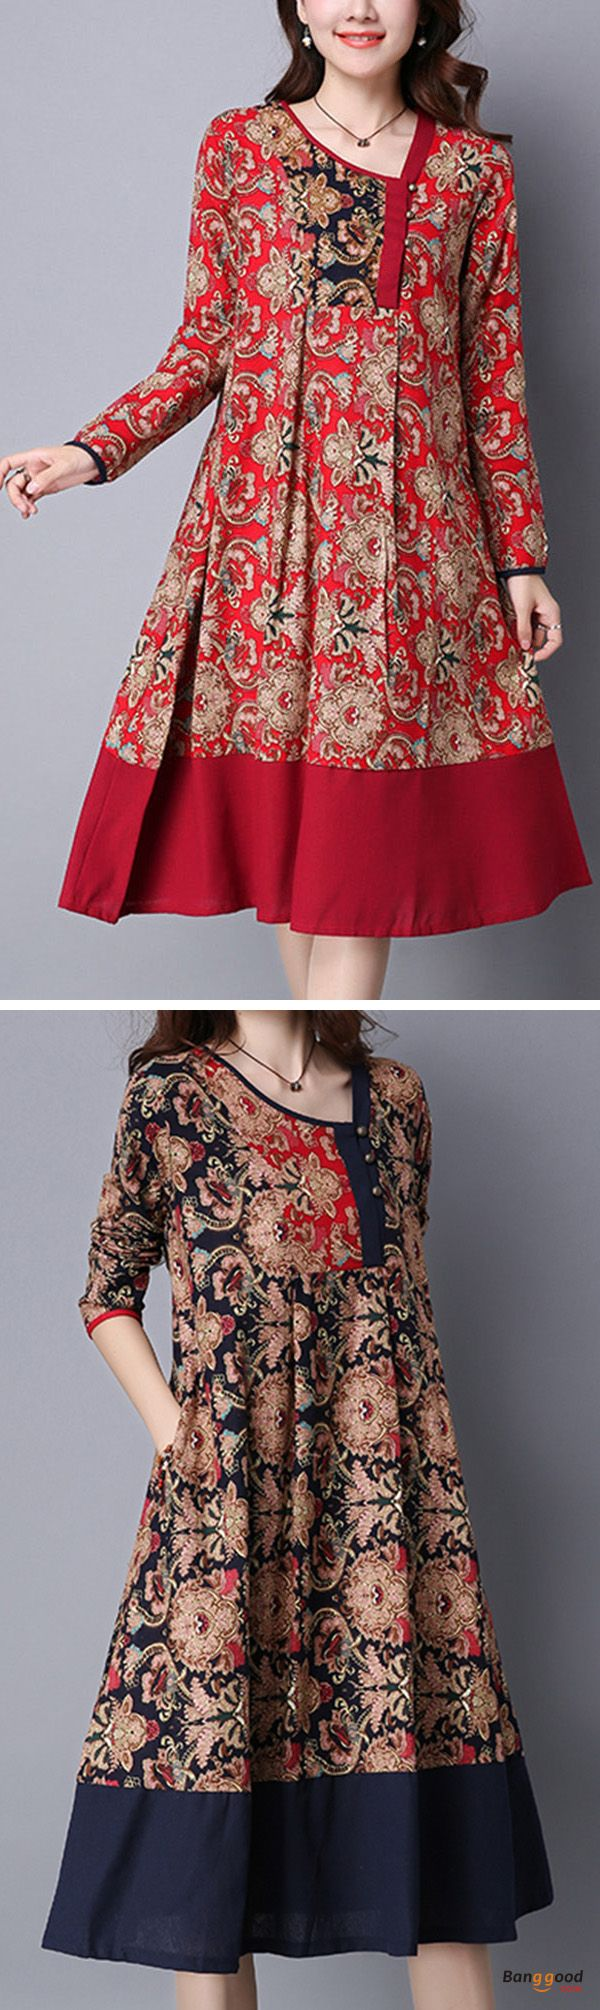 US$26.89+Free shipping. Size(US): XS~L. Material: Polyester. Home or out, love this vintage and casual dress. Women Dresses, Long Dresses, Dresses Casual, Dresses for Teens, Summer Dresses, Summer Outfits, Retro Fashion.